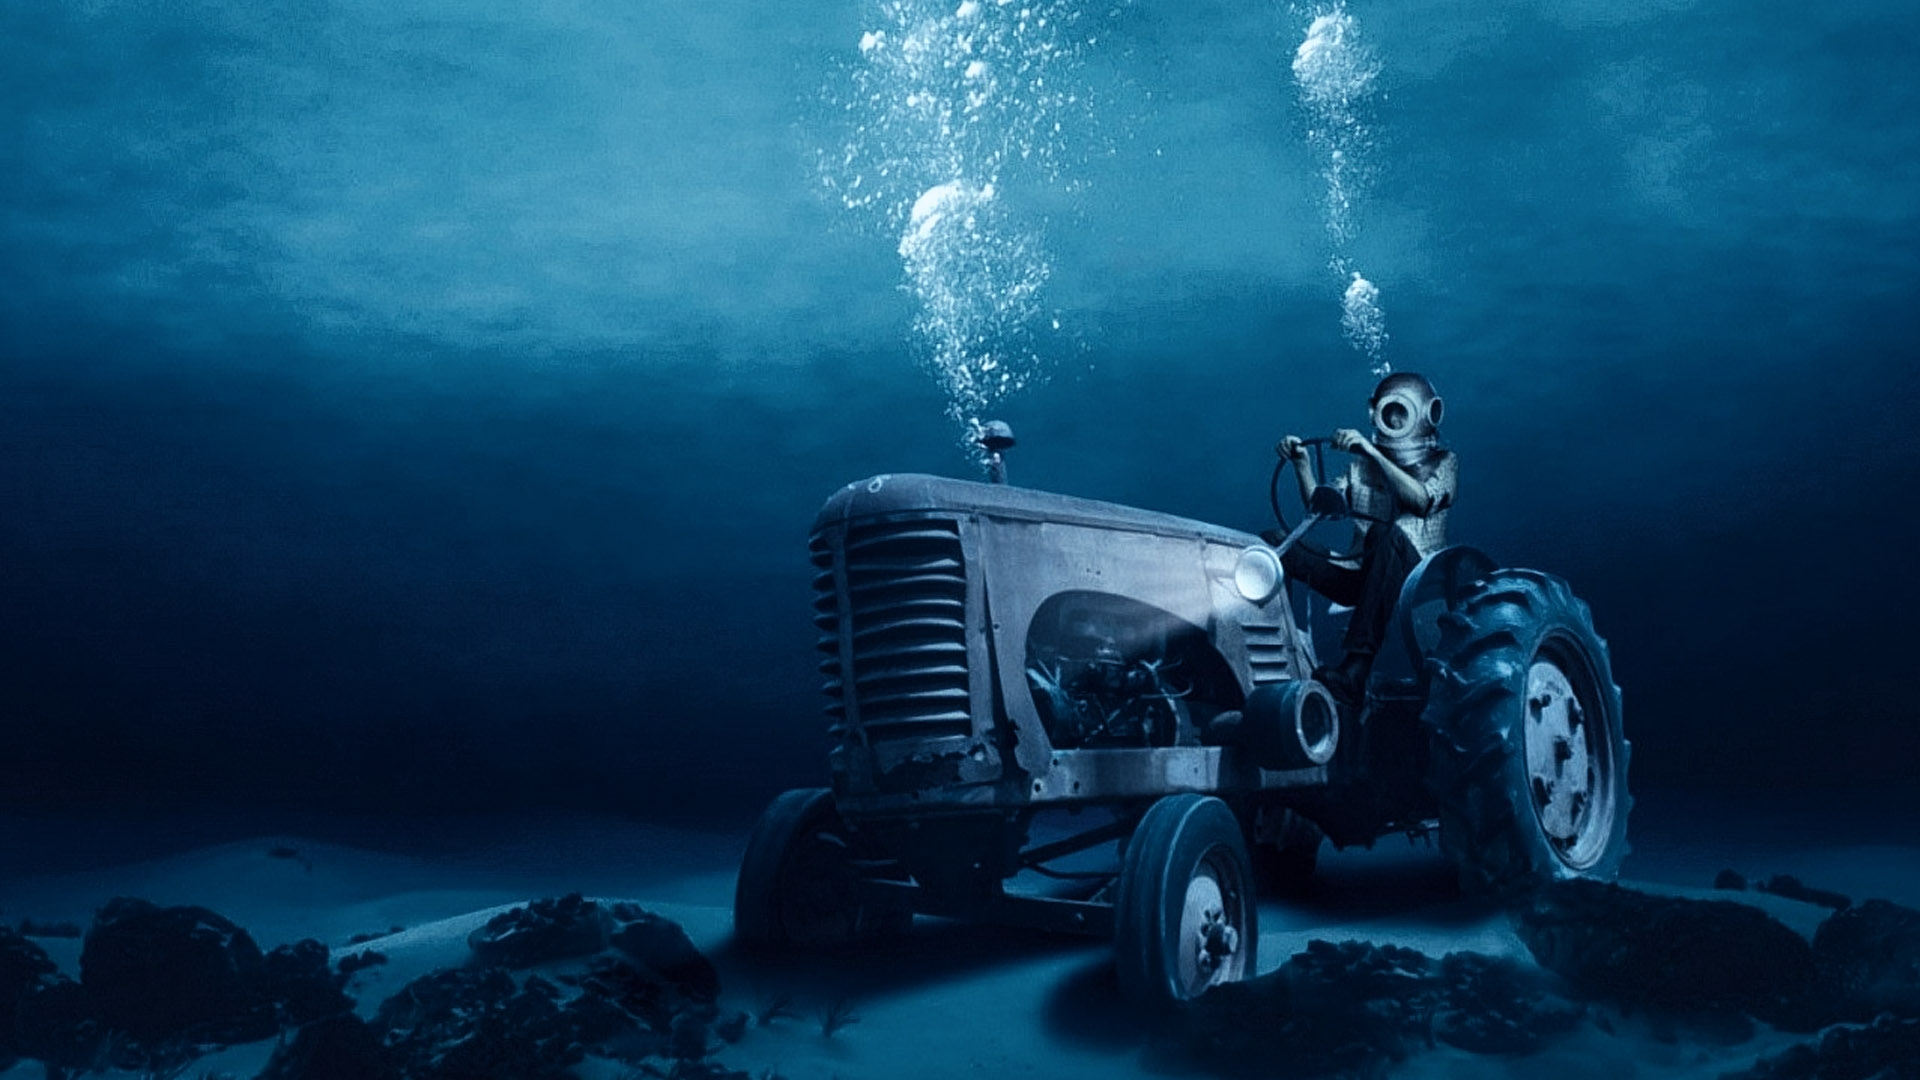 Hd wallpaper underwater - Awesome Tractor Undersea Wallpaper Hd 10002 Wallpaper Wallpaperlepi